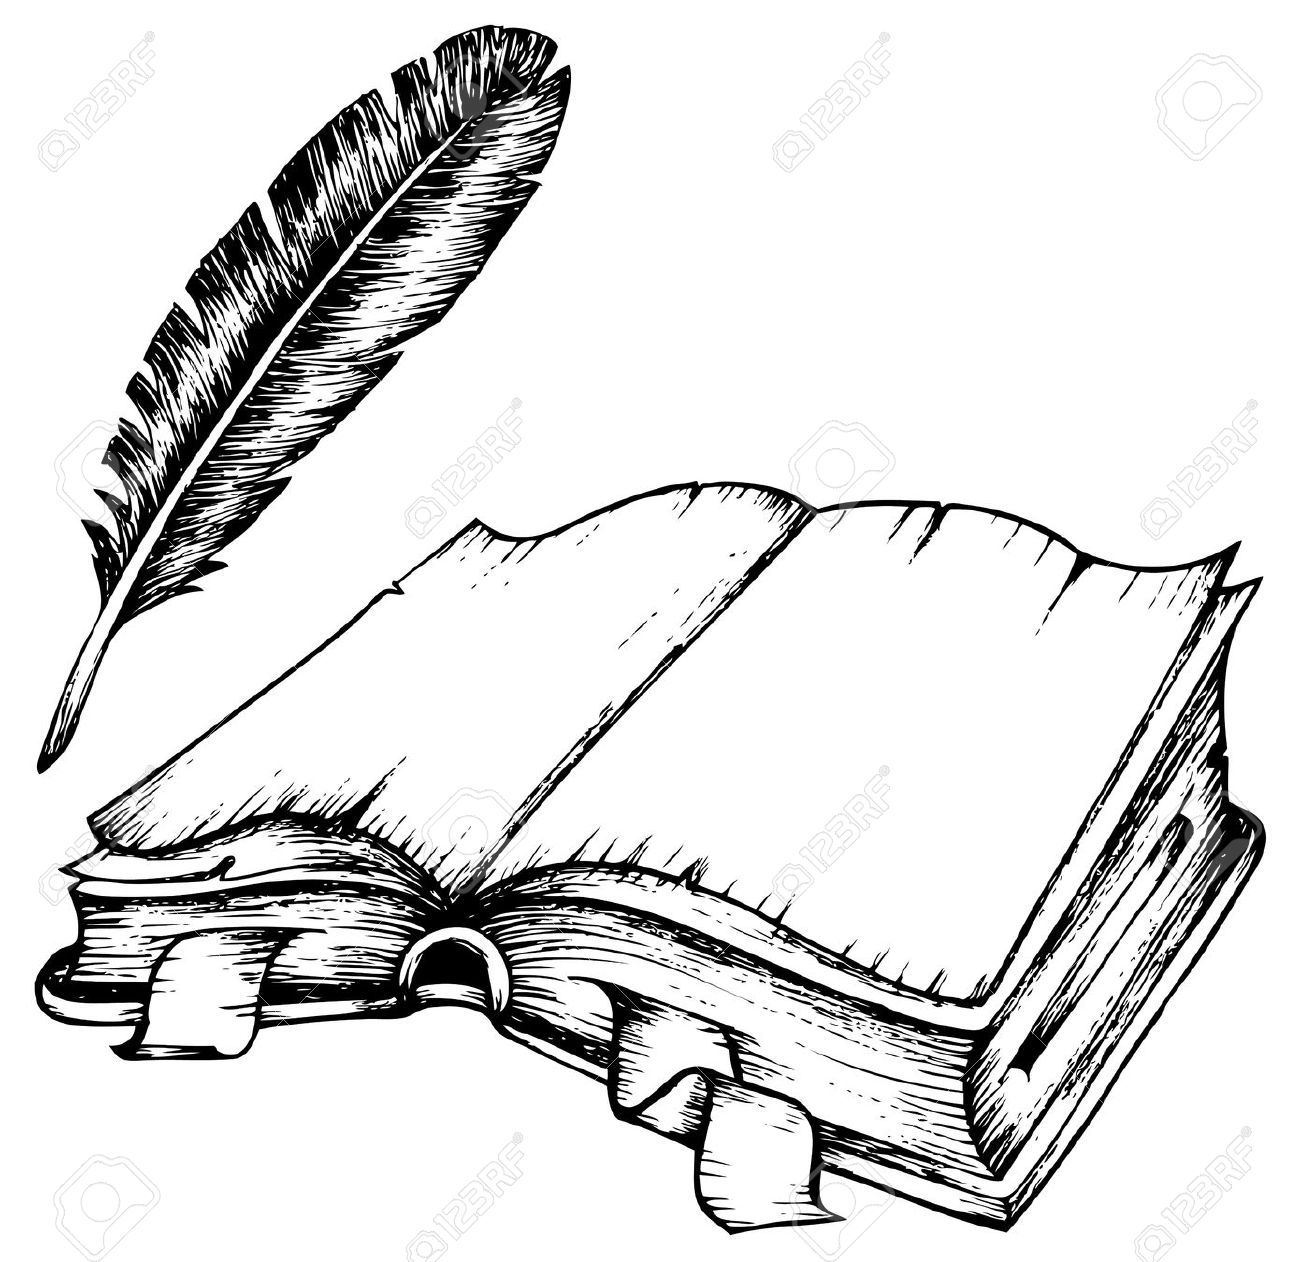 Quill Drawing Of Opened Book With Feather Illustration